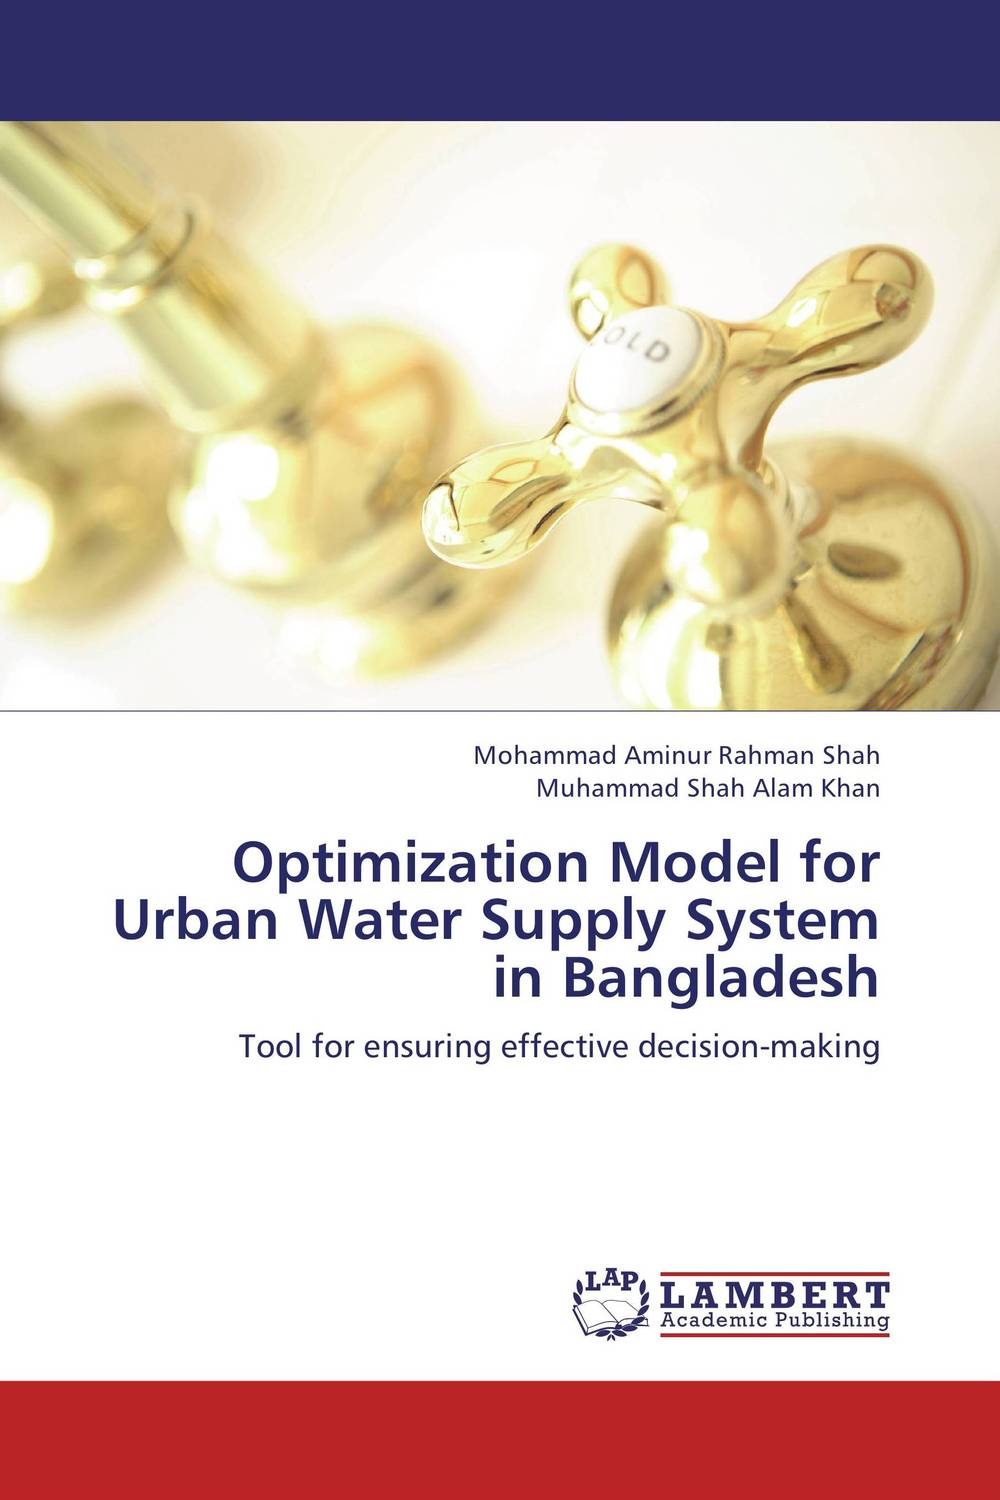 Optimization Model for Urban Water Supply System in Bangladesh breastfeeding knowledge in dhaka bangladesh